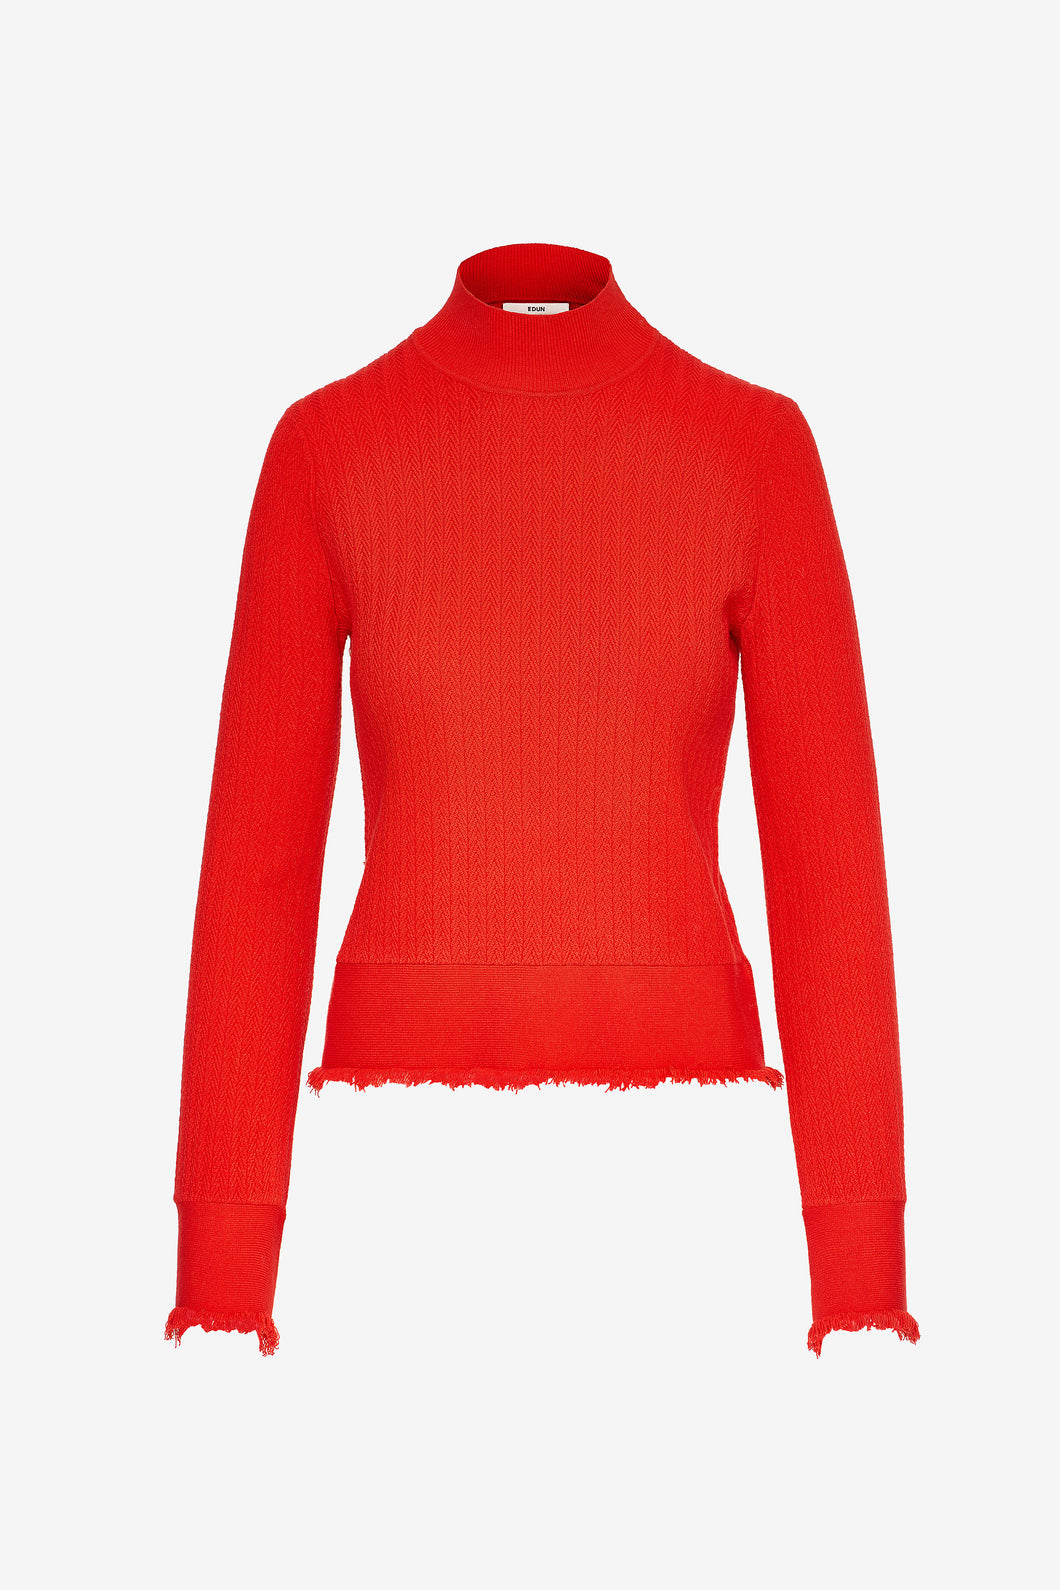 Edun Herringbone Rib Bell Sleeve Sweater